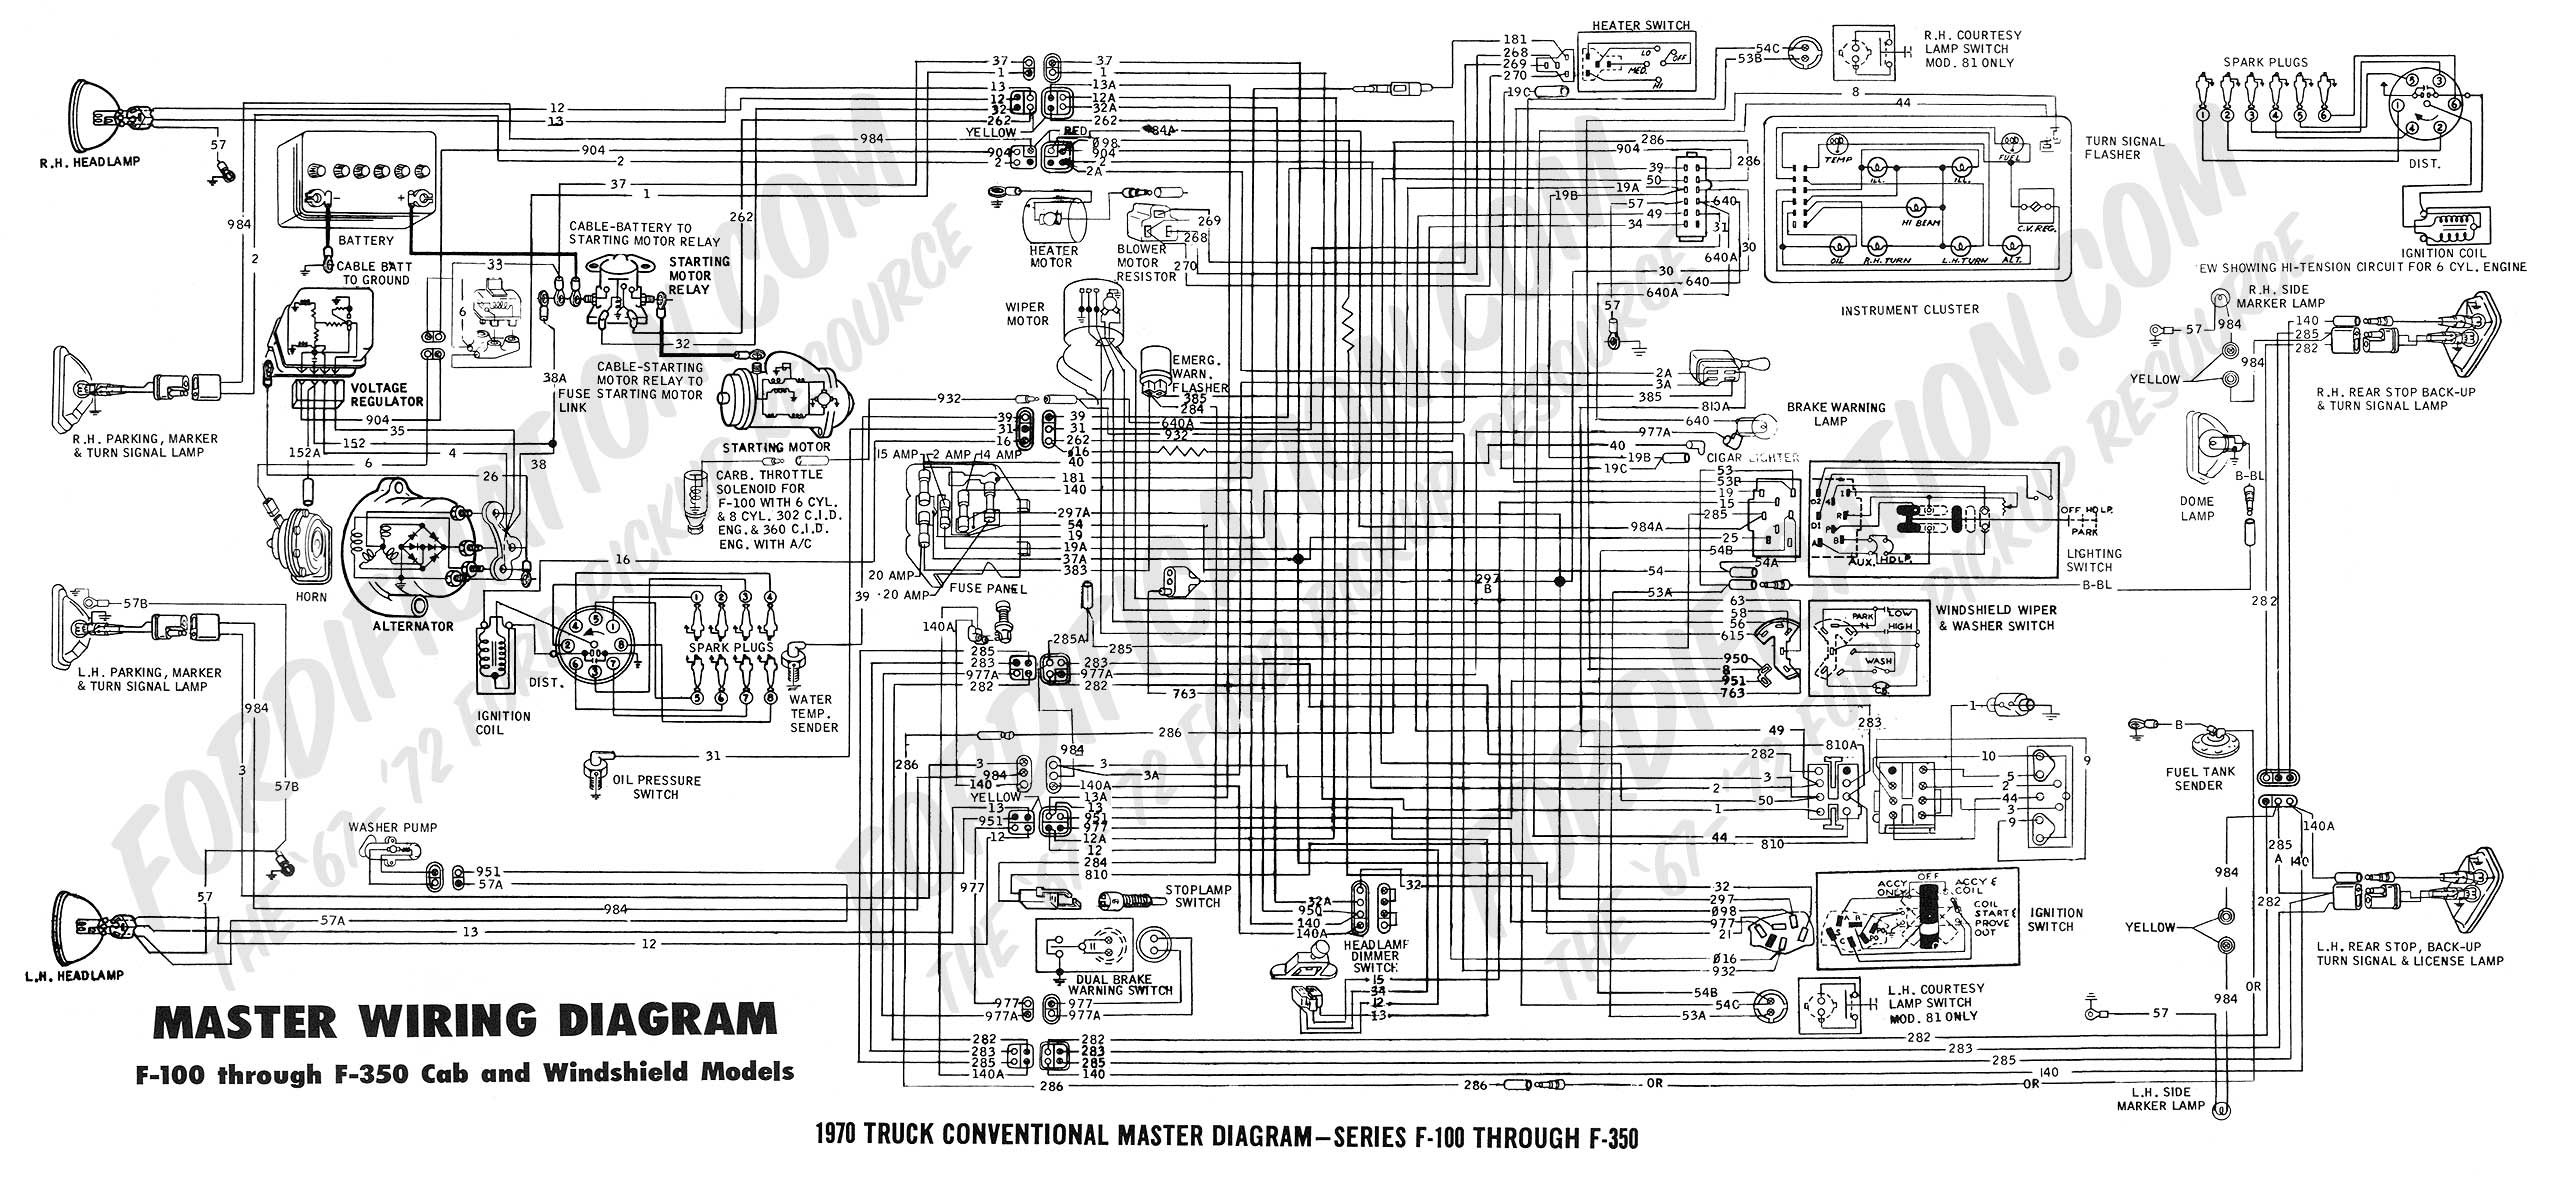 Ford Truck Trailer Wiring Harness Library 5 0 1979 Diagram Schemes 1967 Steering Column